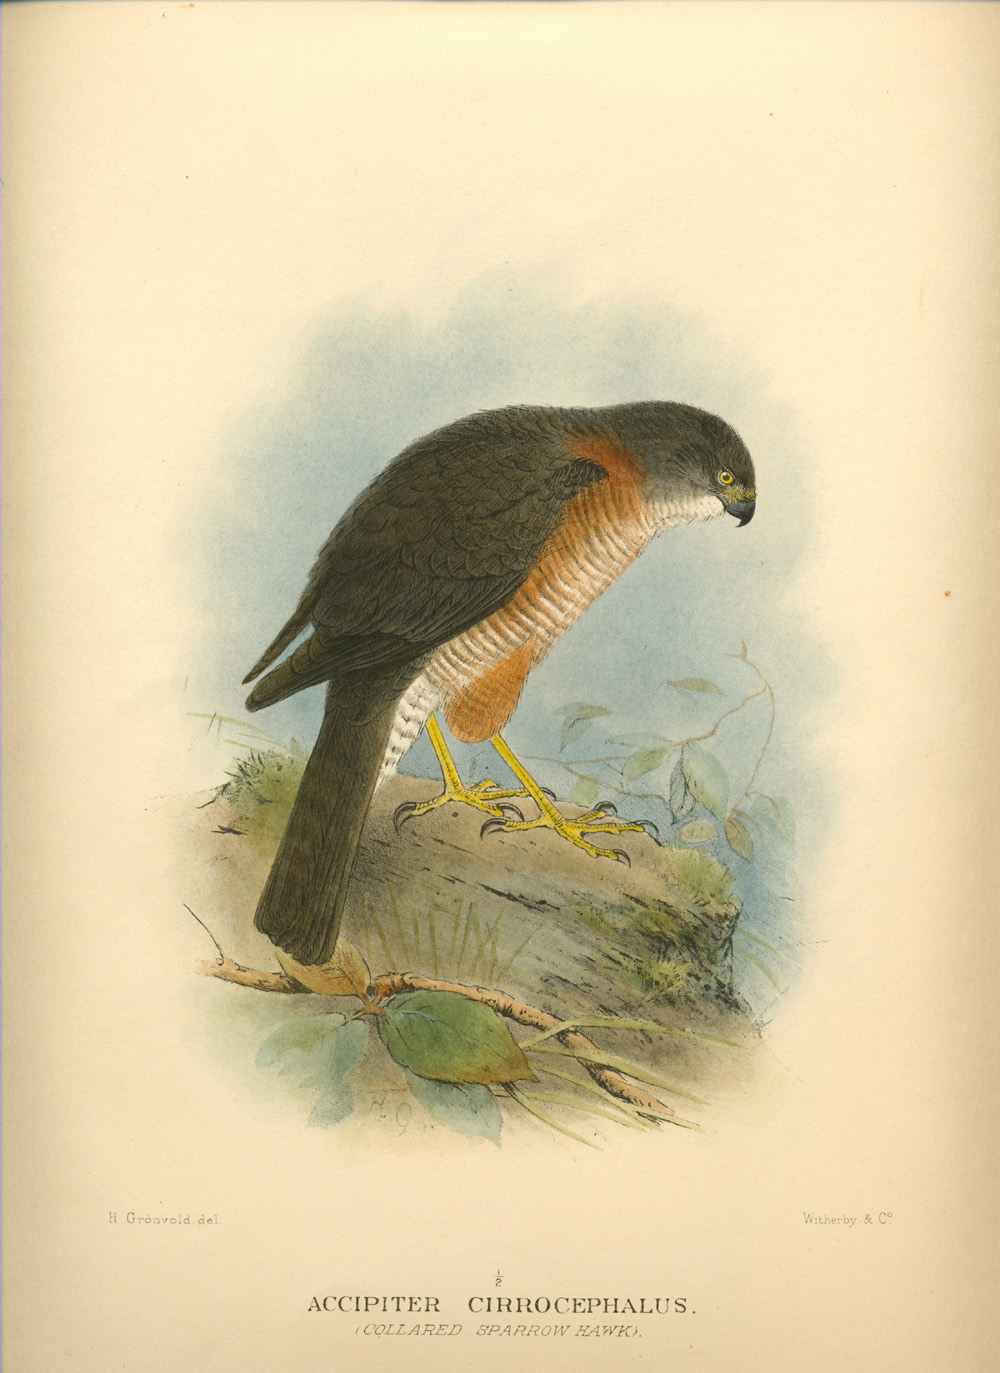 Accipiter Cirrocephalus, Collared Sparrow Hawk. Mathews' Birds of Australia c1910-27.)